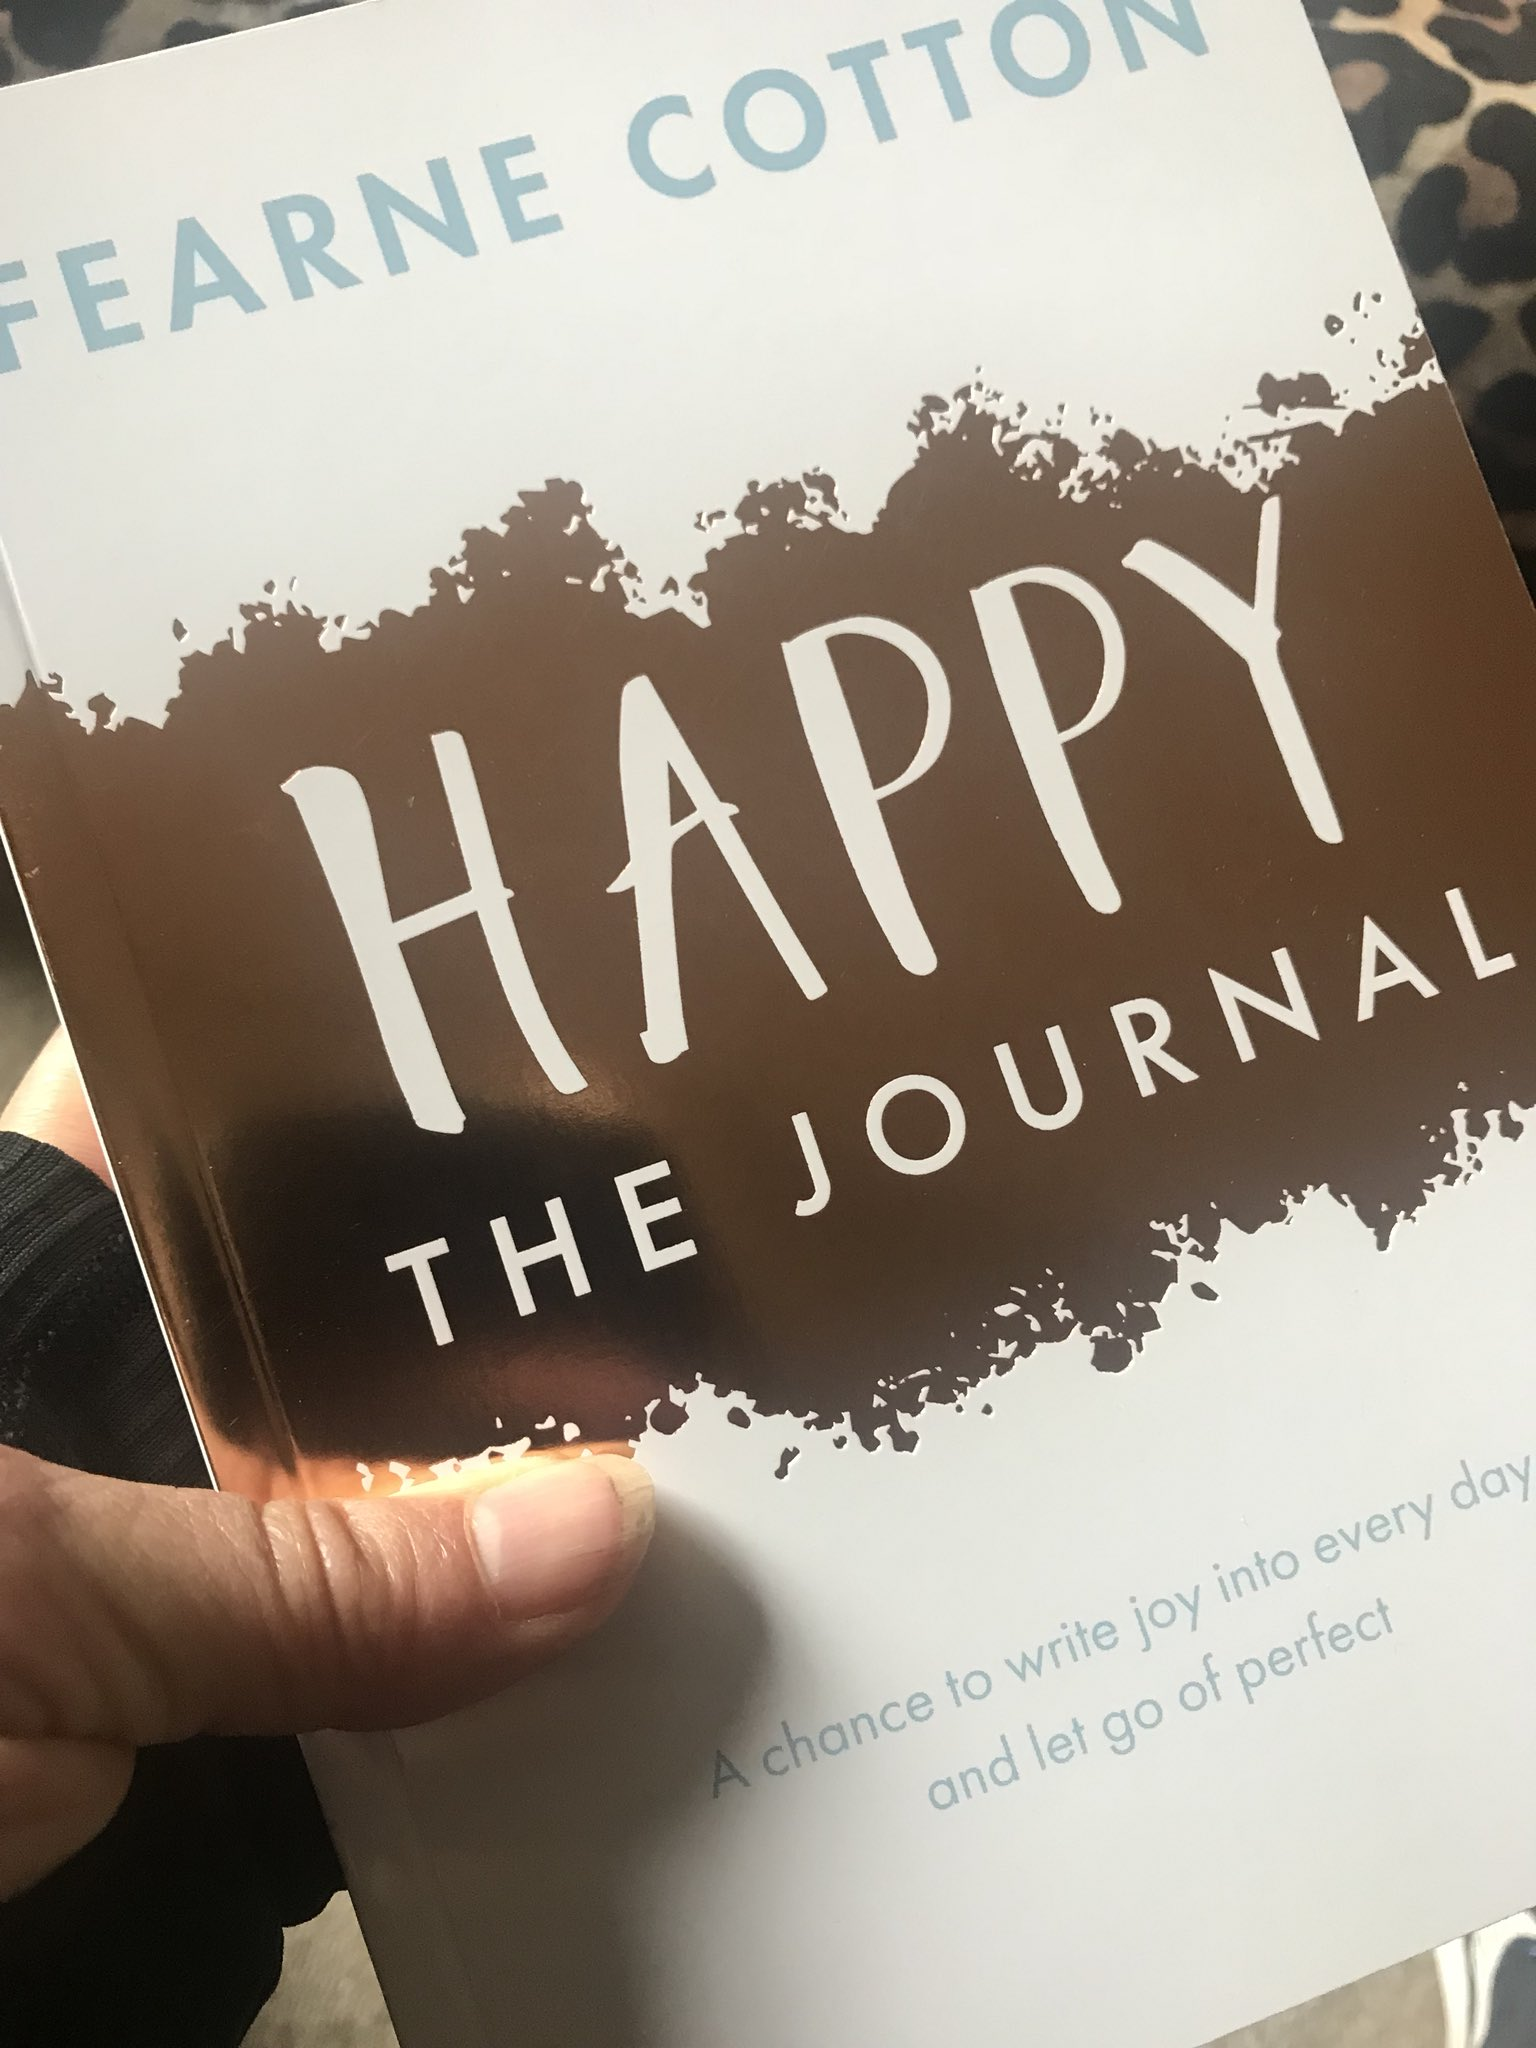 RT @JoWoodOfficial: Just received this from my lovely Fearne @Fearnecotton thank you so much . #behappy https://t.co/qNQftrMOwe